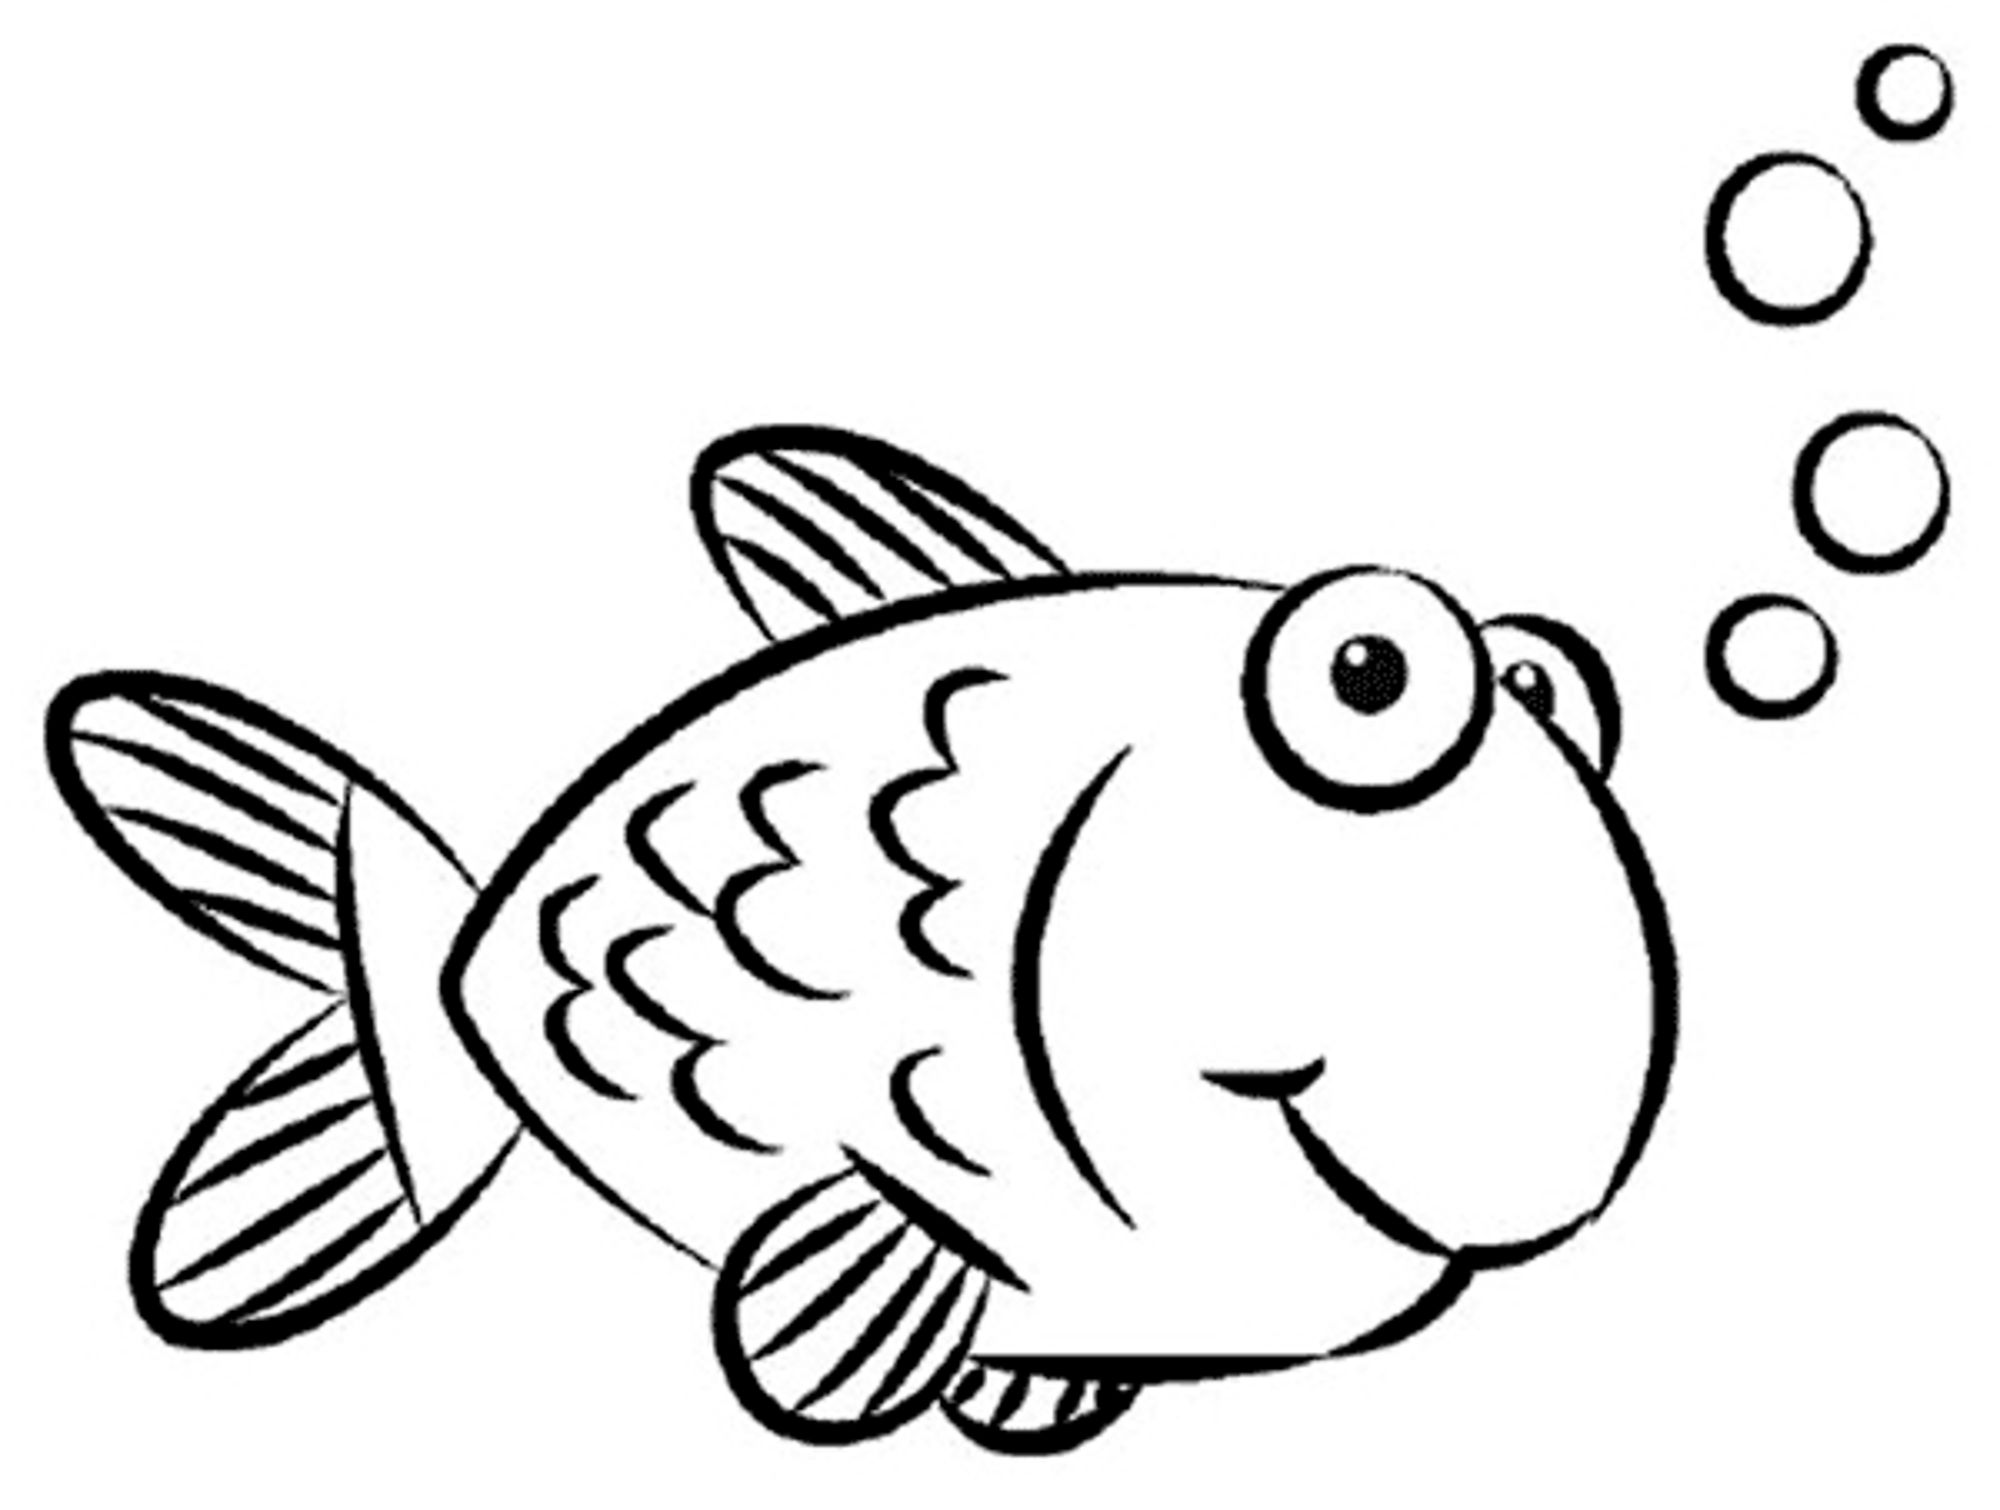 Fish Drawing For Kids - Cliparts.co